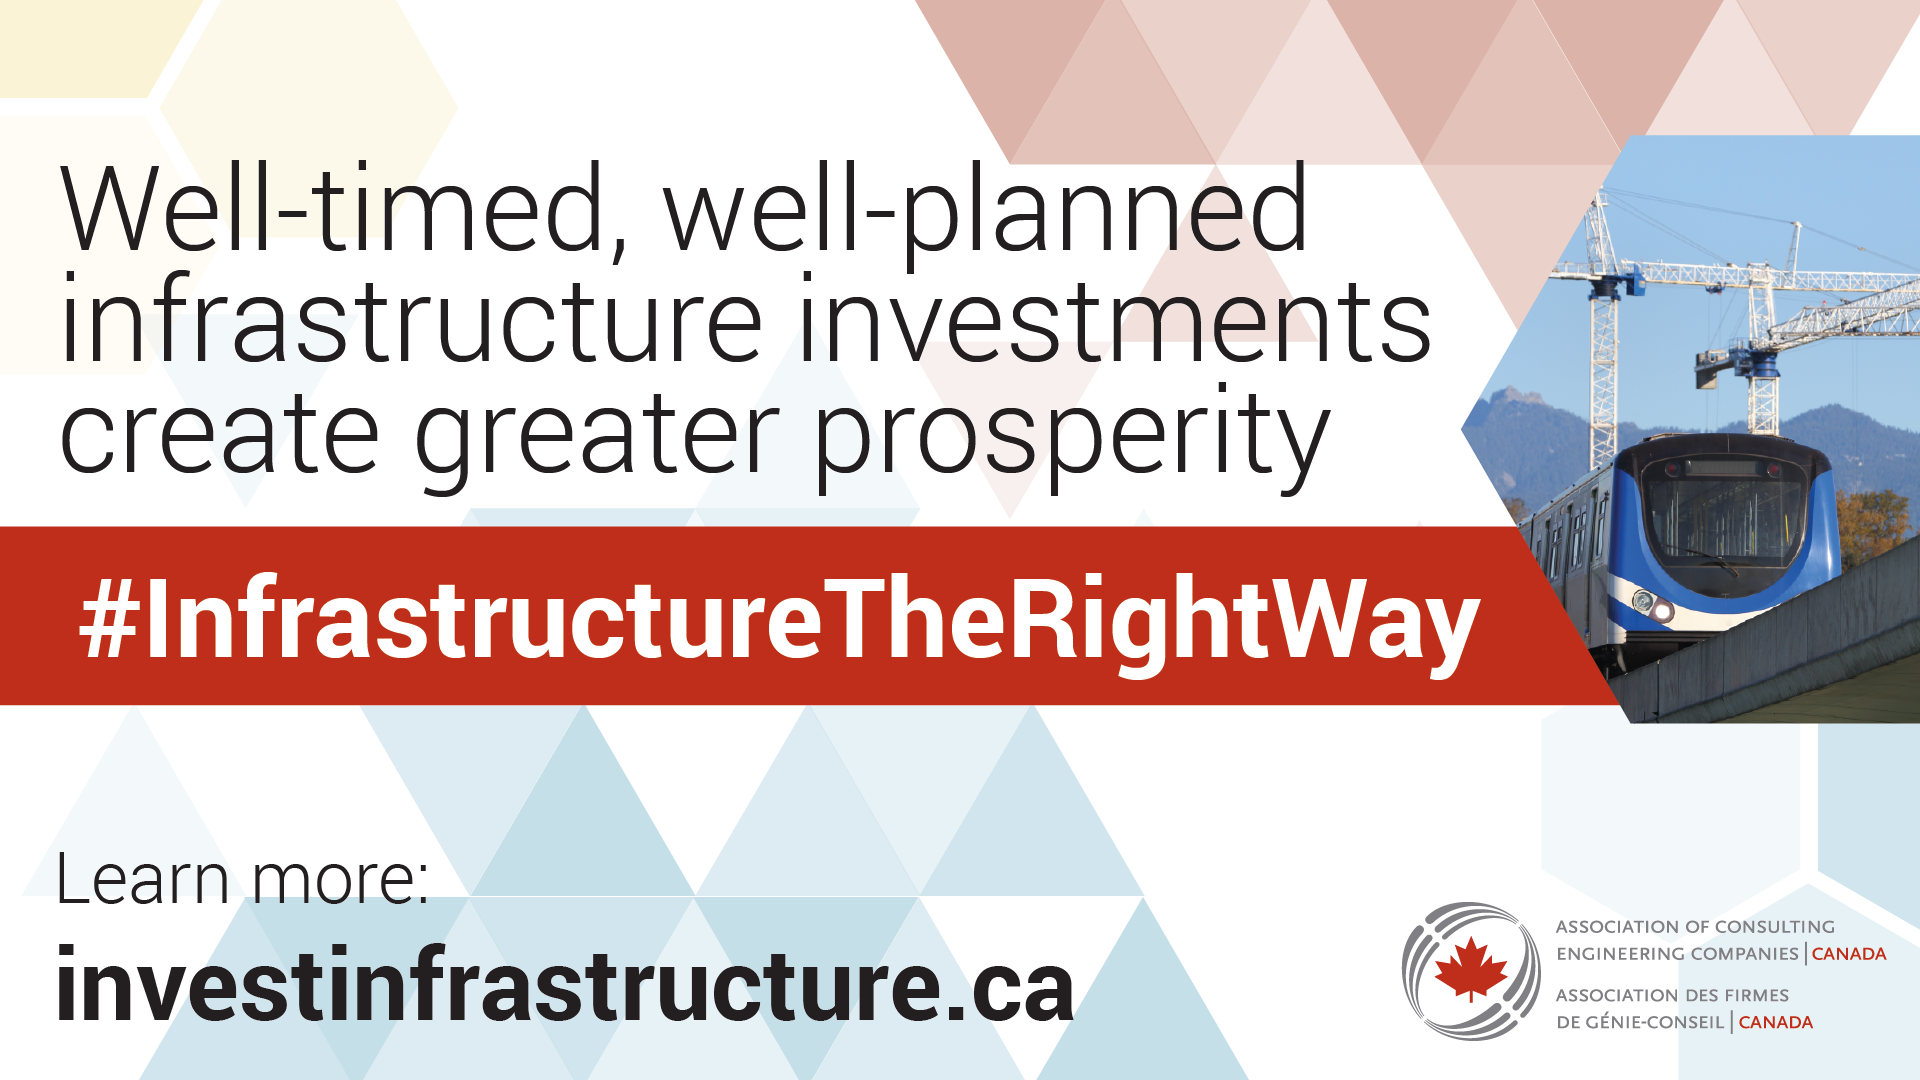 invest infrastructure shareables-01.png